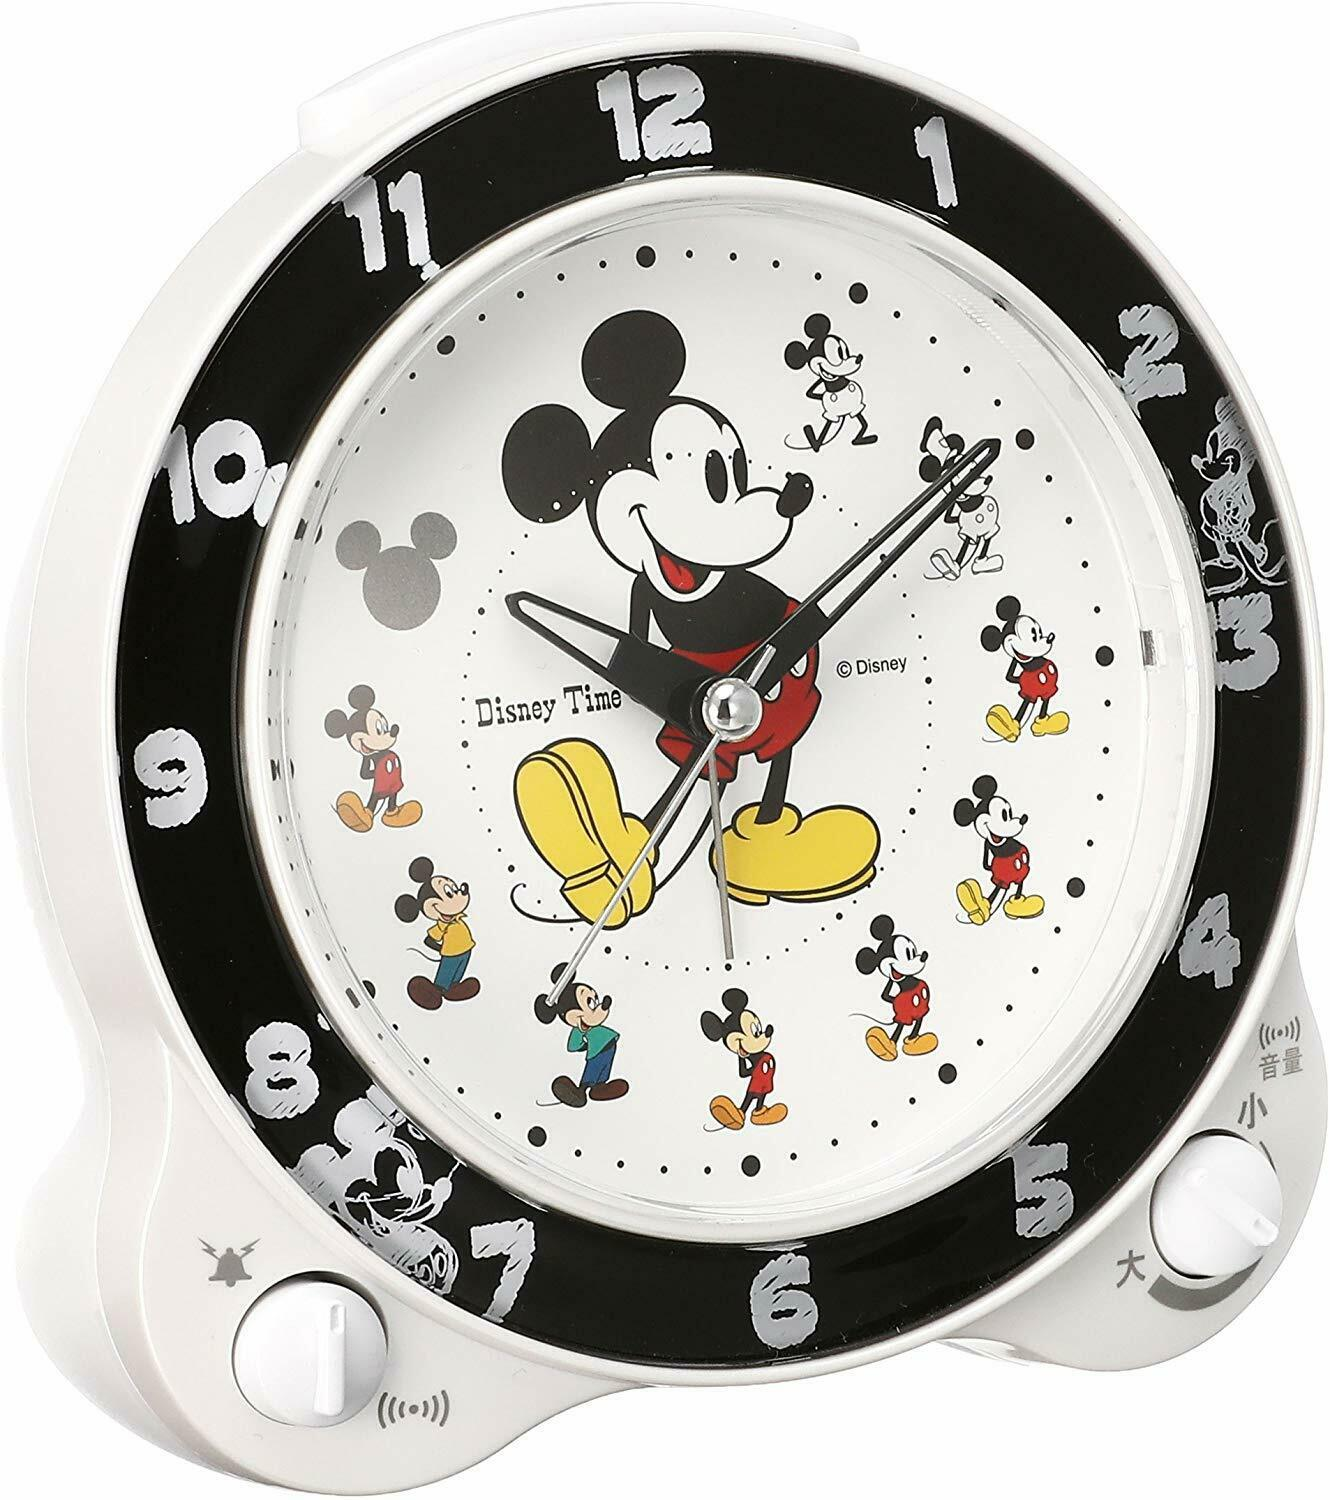 Primary image for Mickey & Friends Disney Time Alarm Clock analog White Black Cute Gift